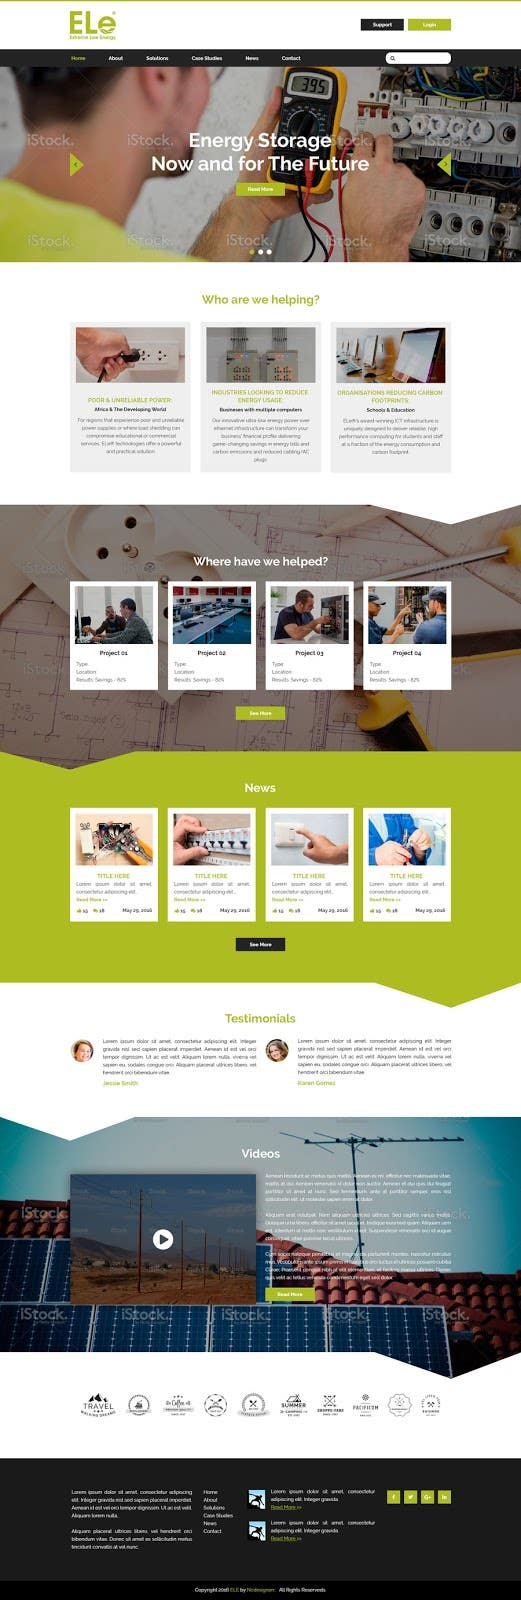 Showcase - web design - ncdesignerr.jpg